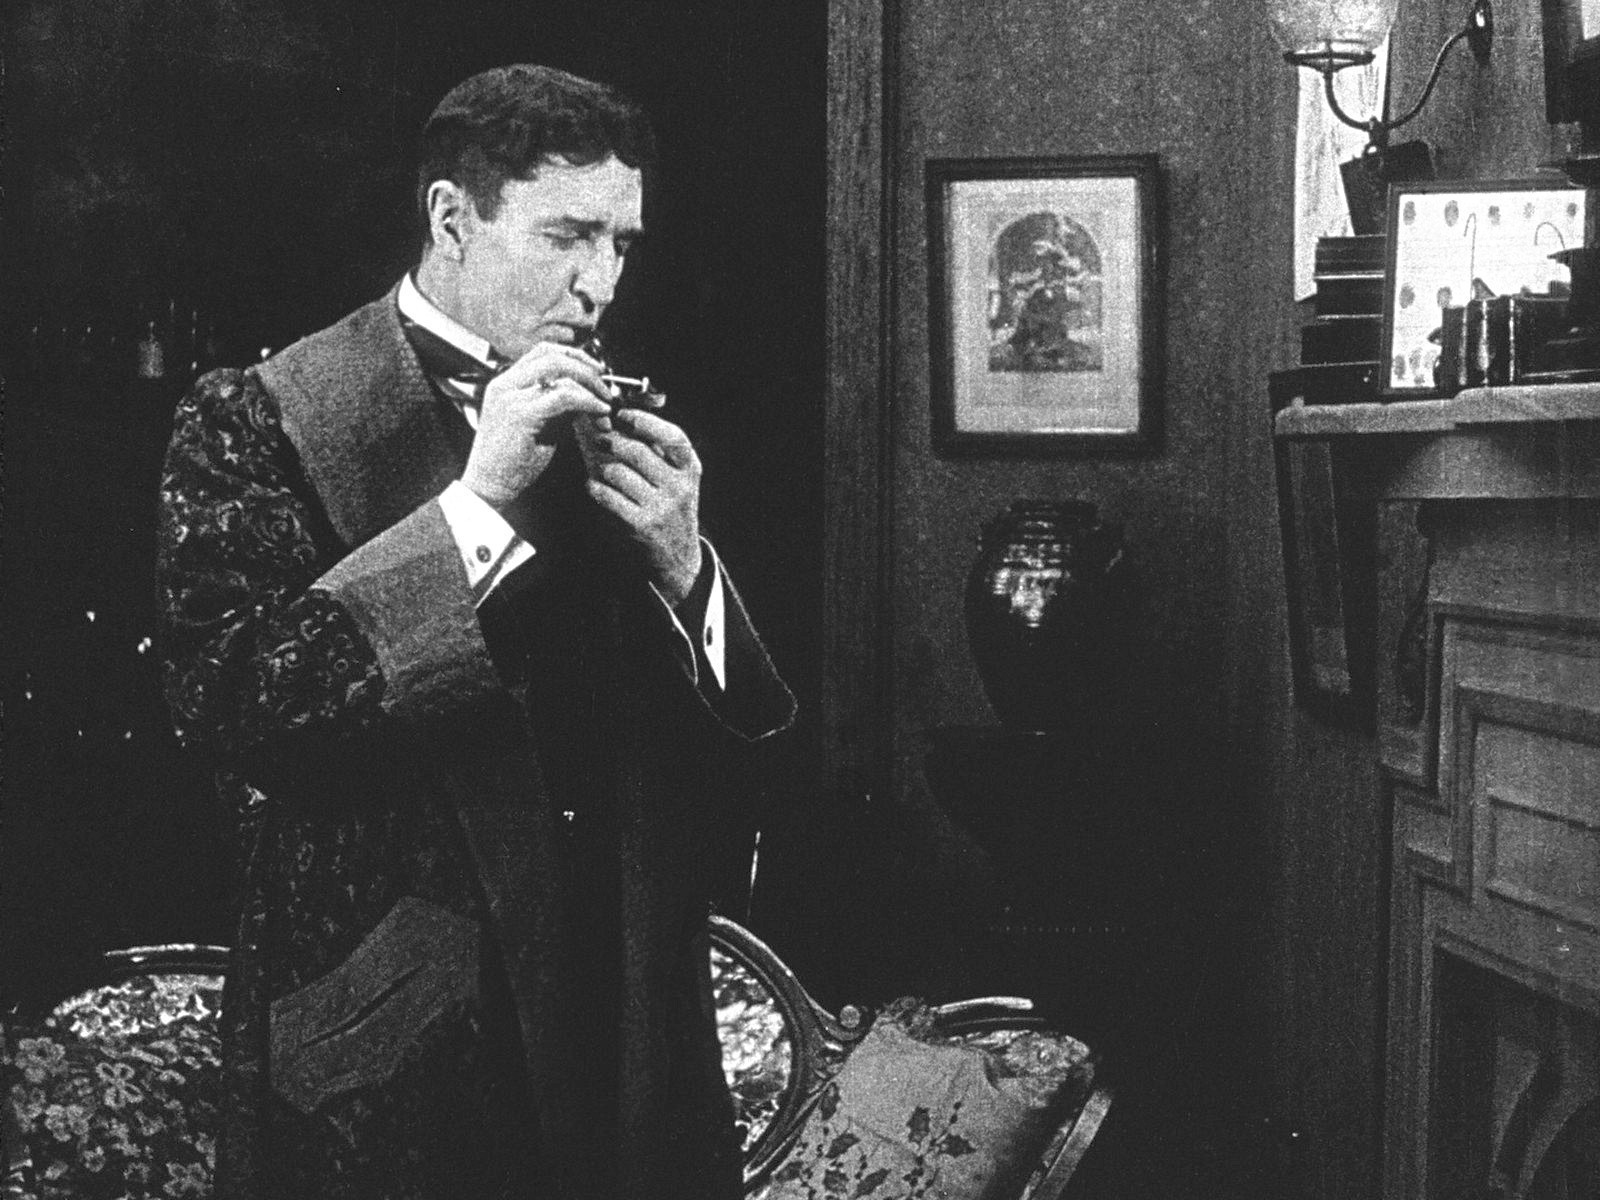 A Lost Sherlock Holmes Film From 1916 Found Chicago Tribune